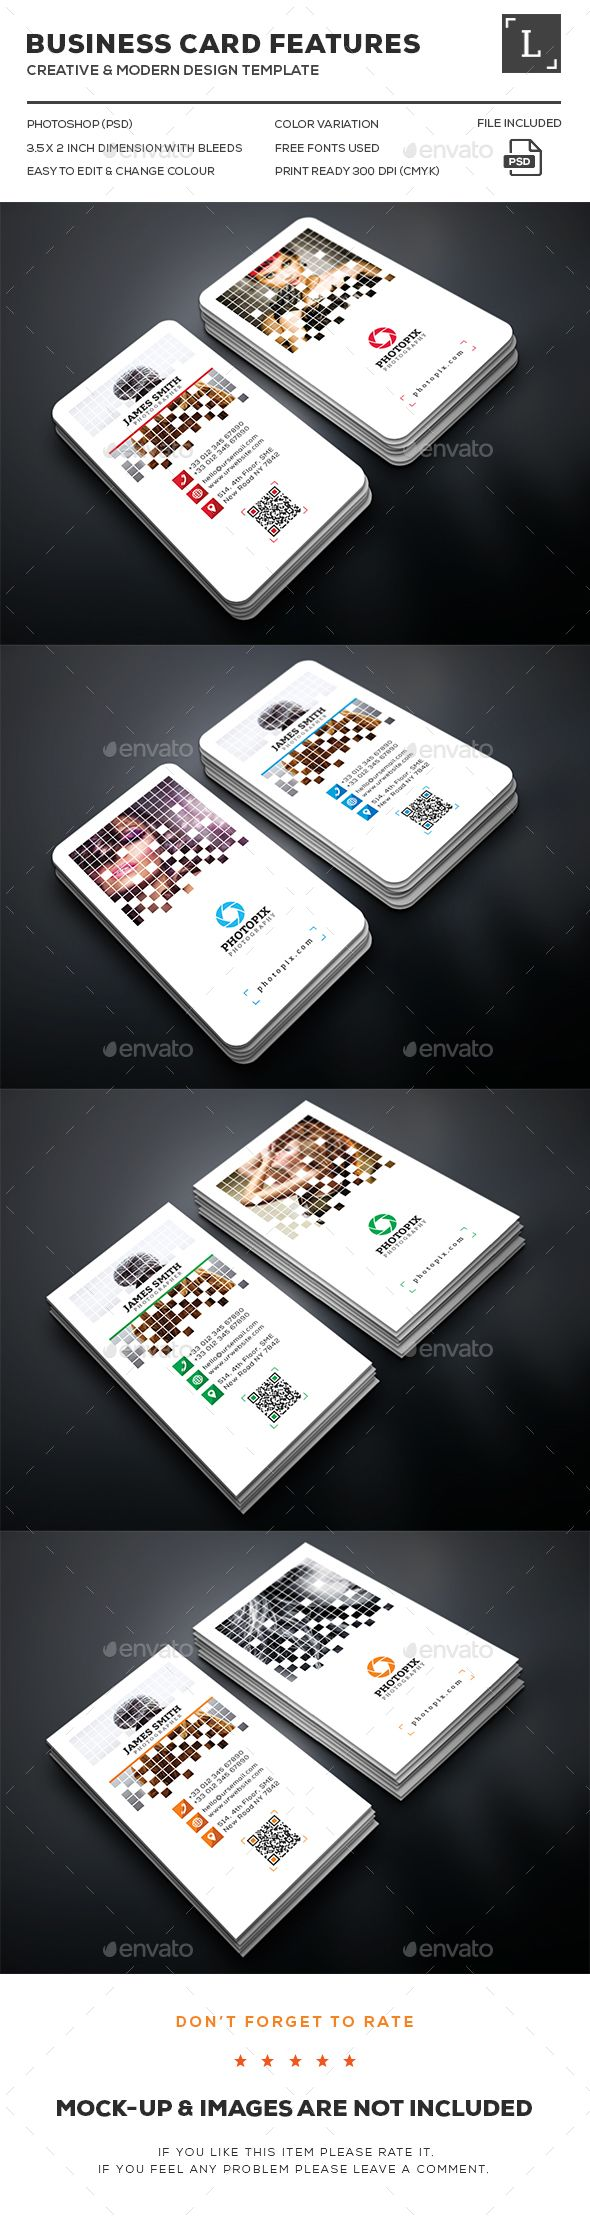 Pixel Photography Business Card Template PSD. Download here: http://graphicriver.net/item/pixel-photography-business-card/15997020?ref=ksioks